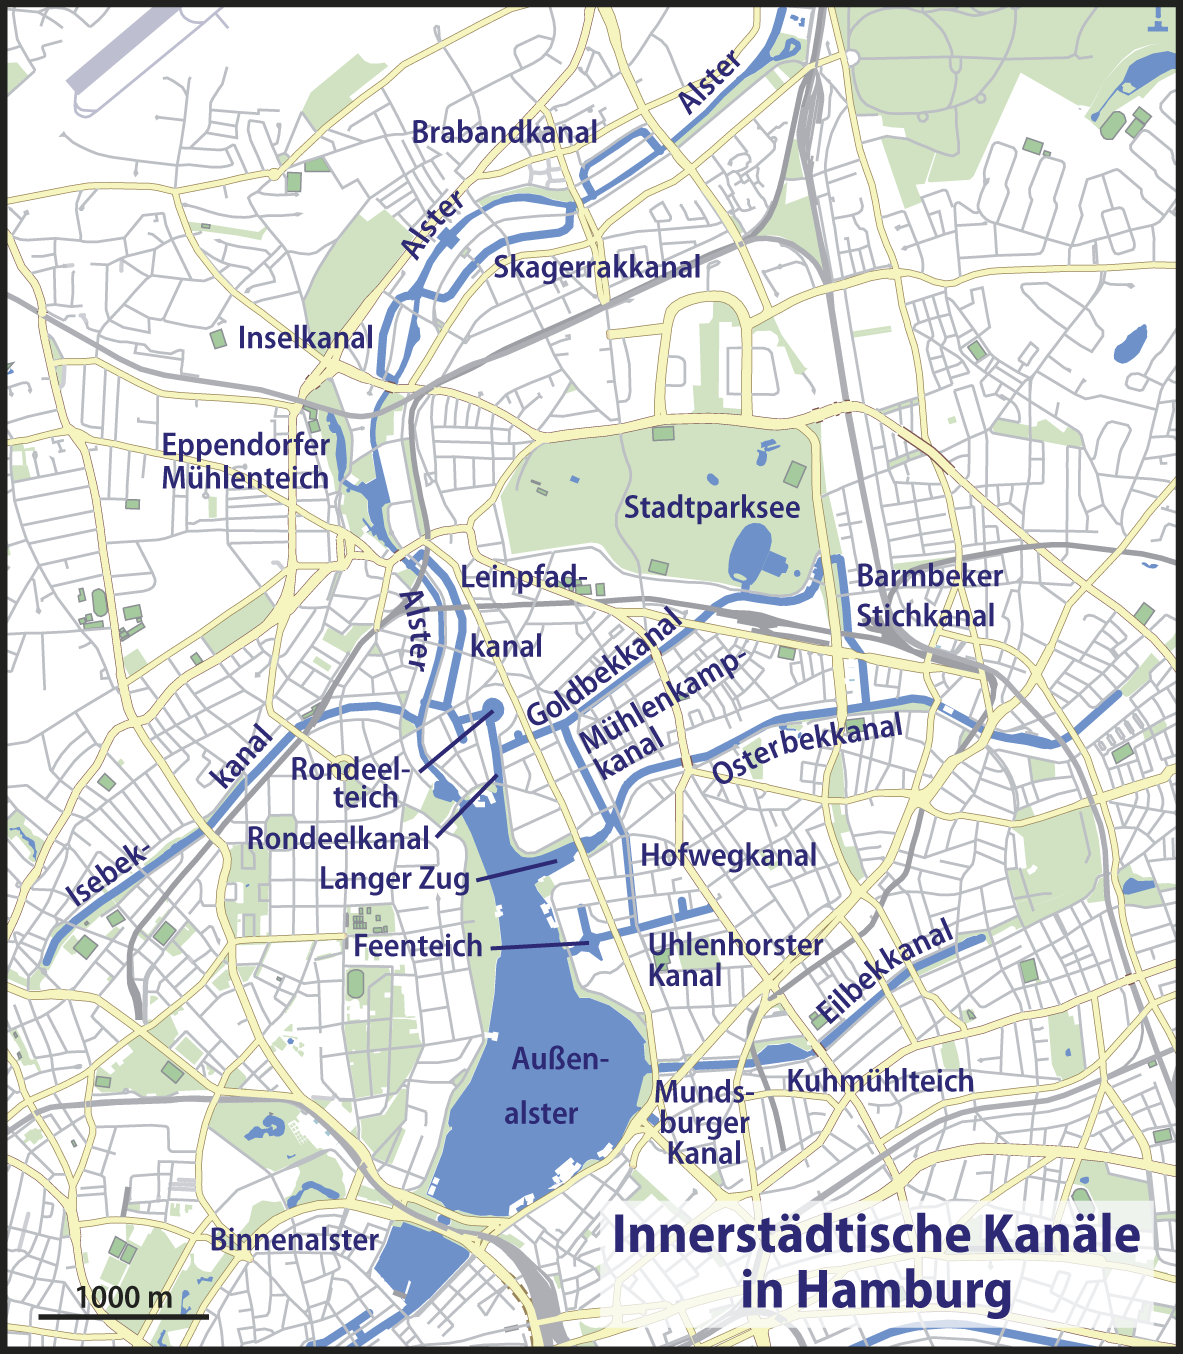 belgium map in europe with Canals In Hamburg 2009 on 4153319756 further pli Petronas besides Busabout likewise Peer likewise Where Is Friedrichshafen On Map Germany.